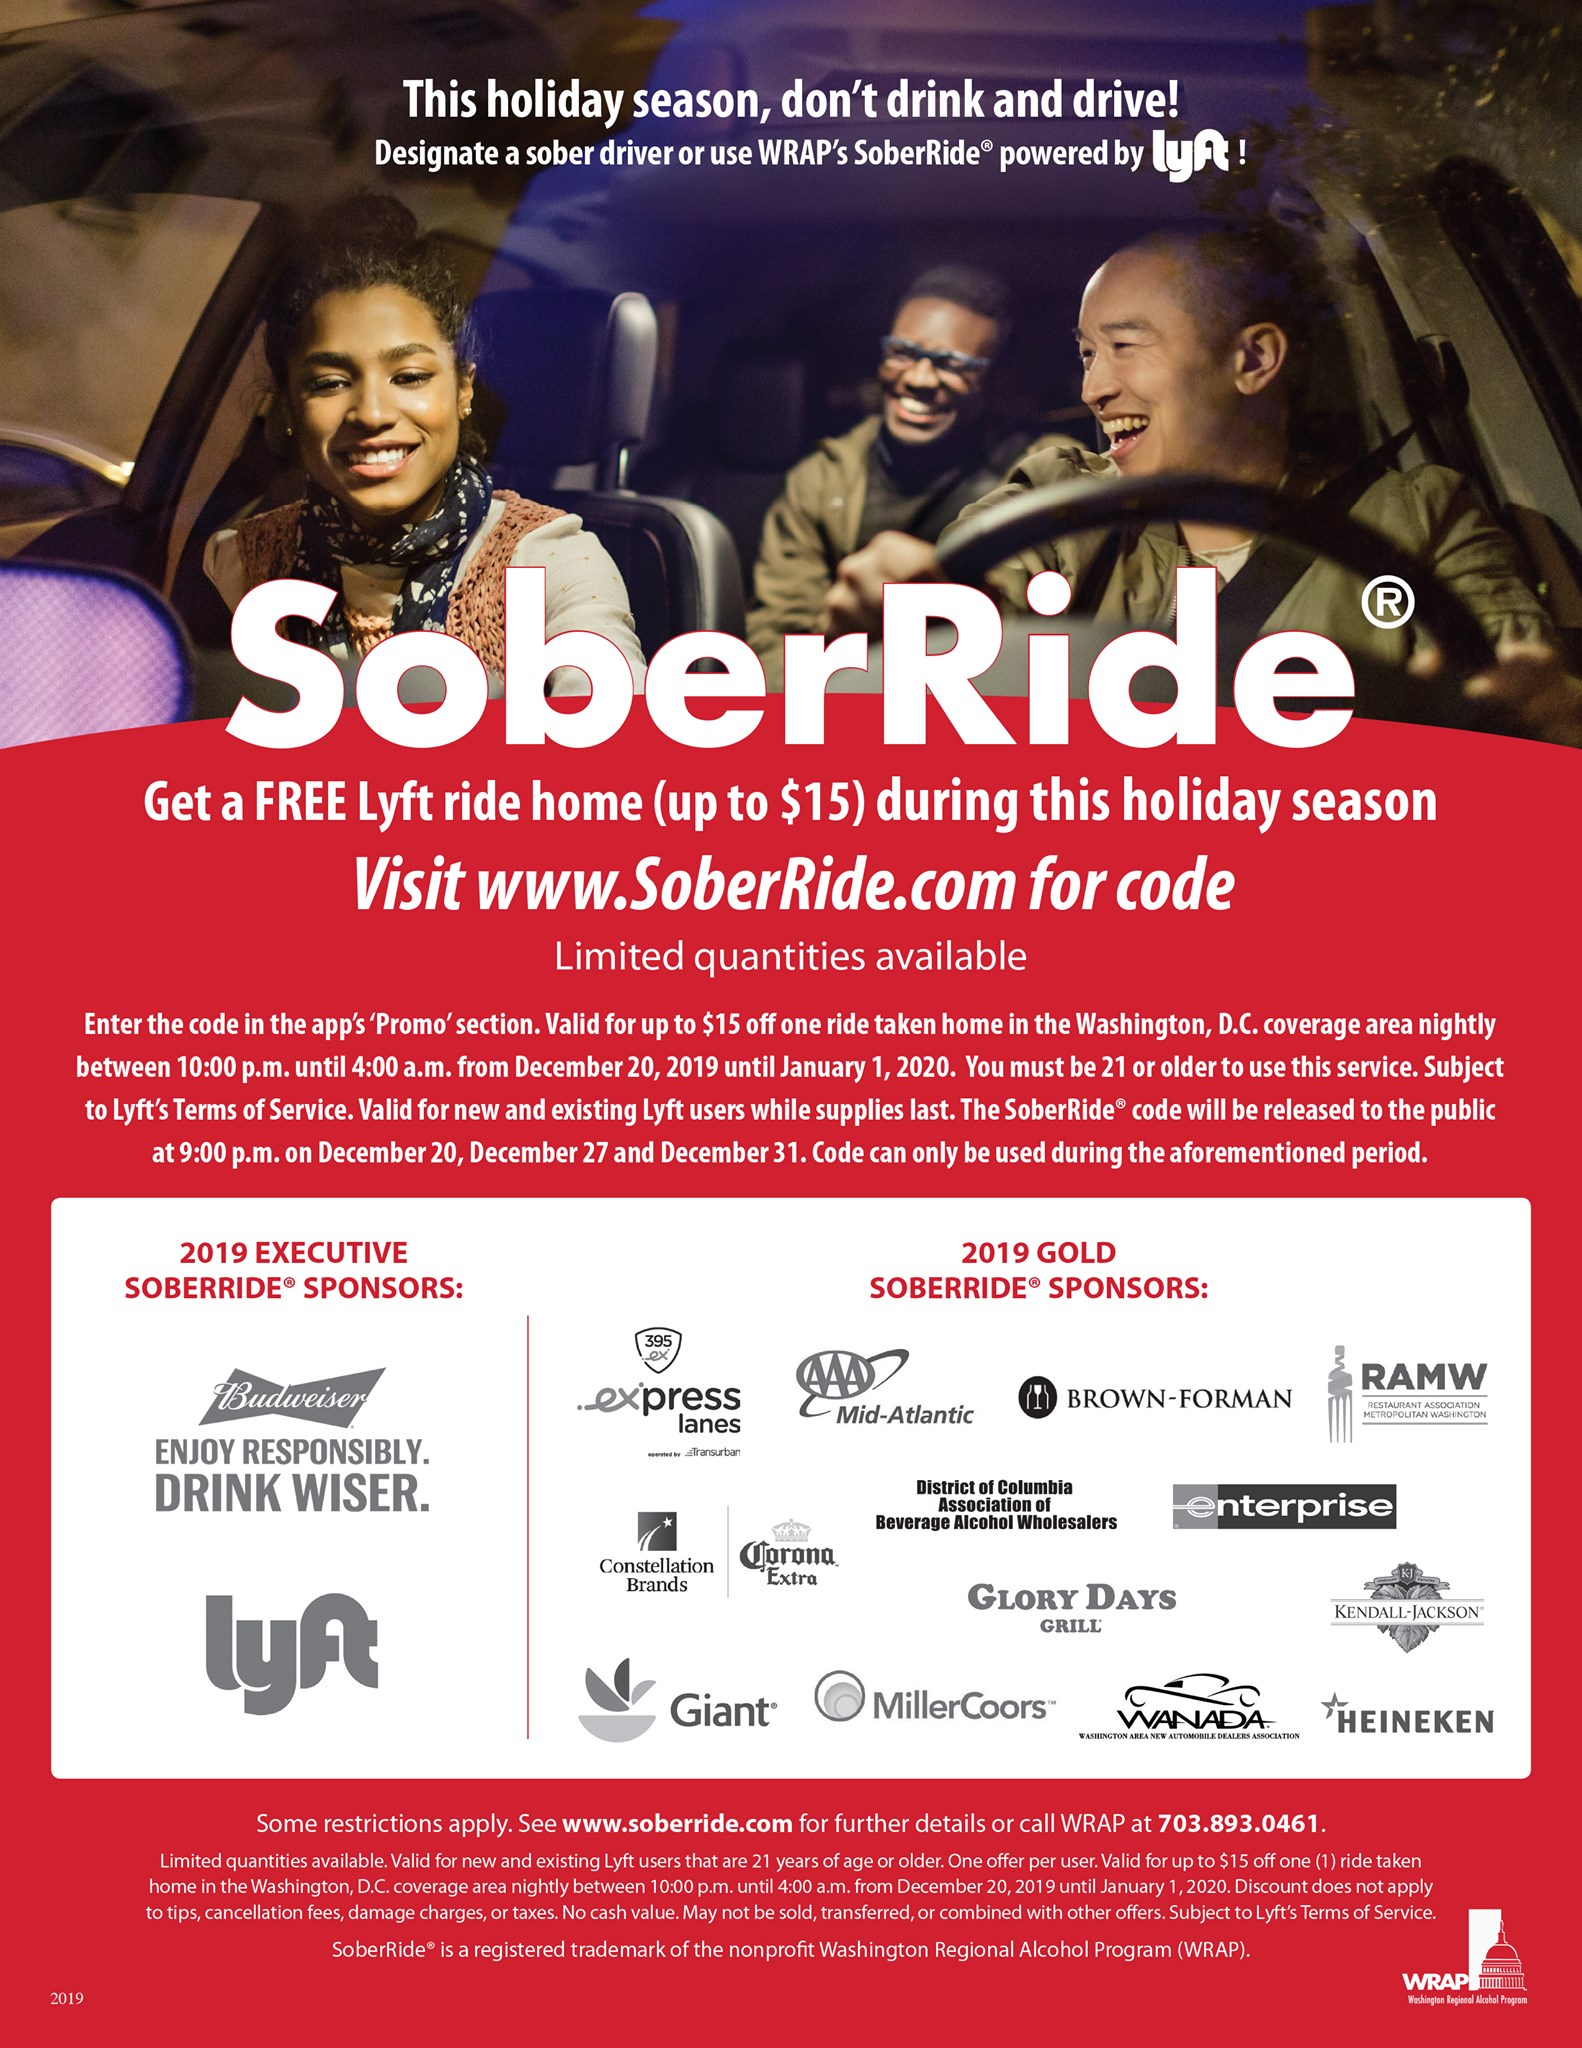 Please don't drink and drive – SoberRide is offering free rides up to $15 on Lyft for New Year's Eve!